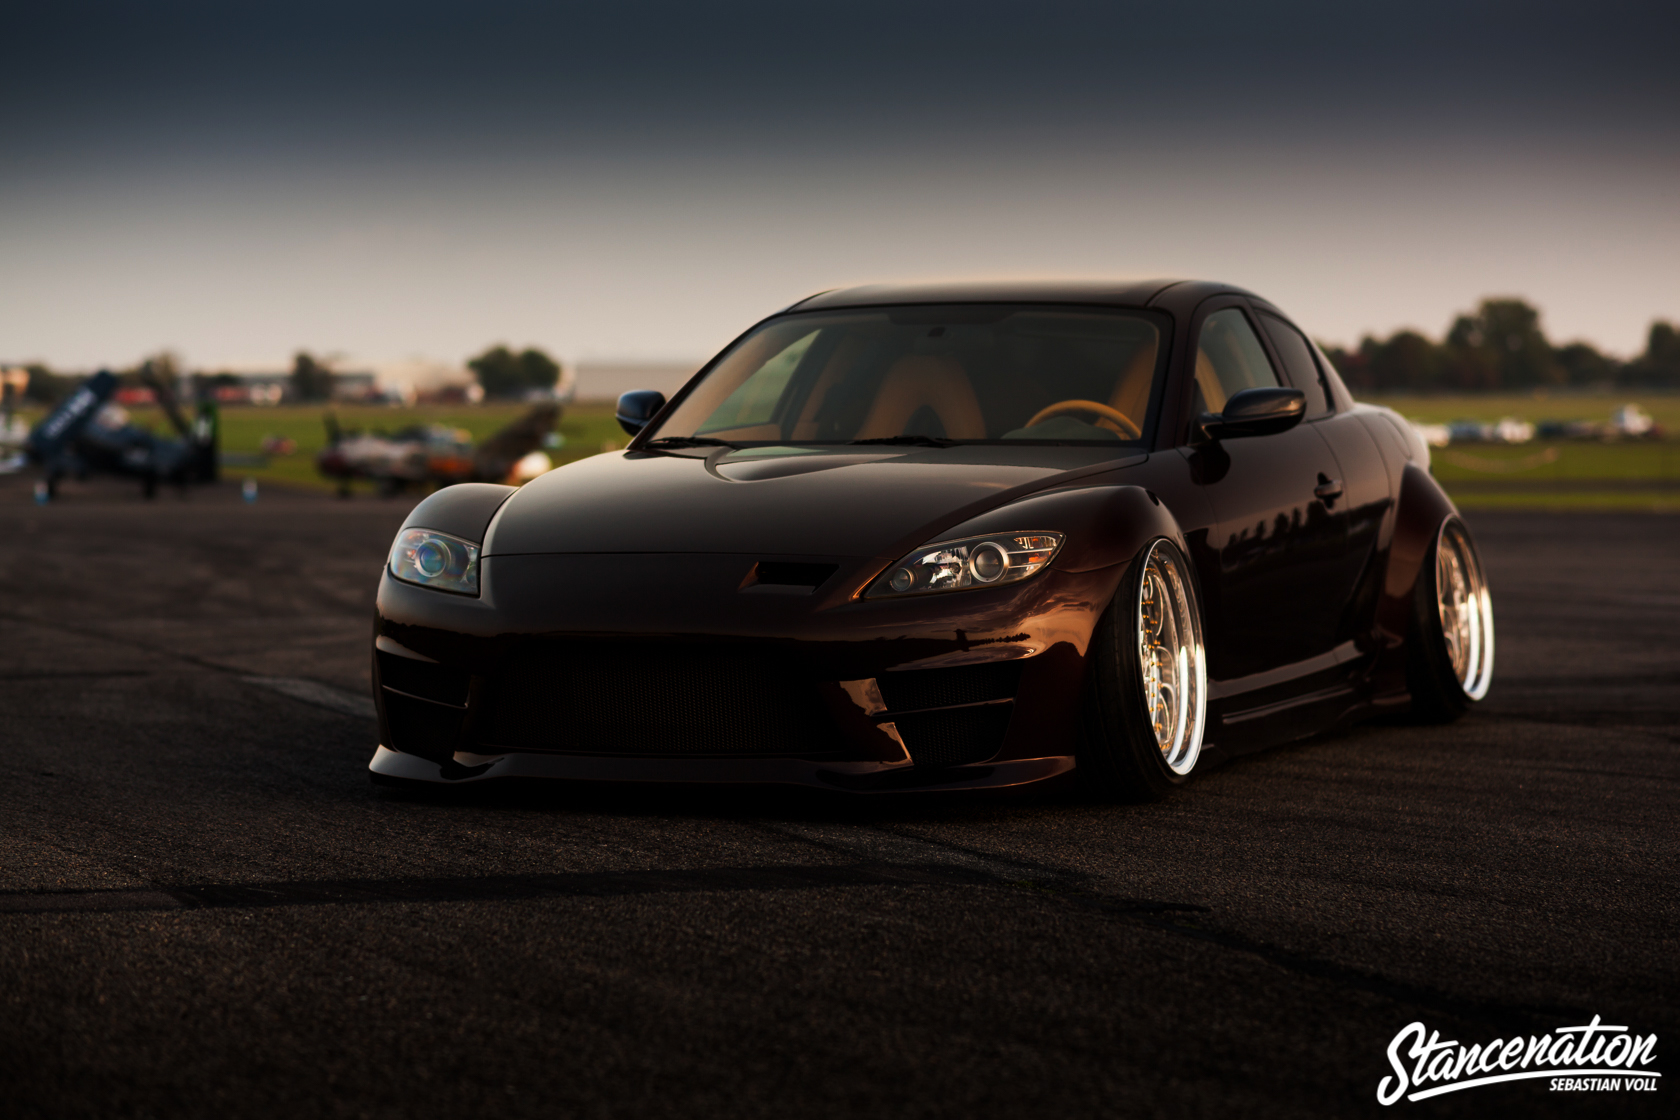 Car Tire Wallpaper Jdm Stay Out Of Harm S Way Vanhecke S Mazda Rx8